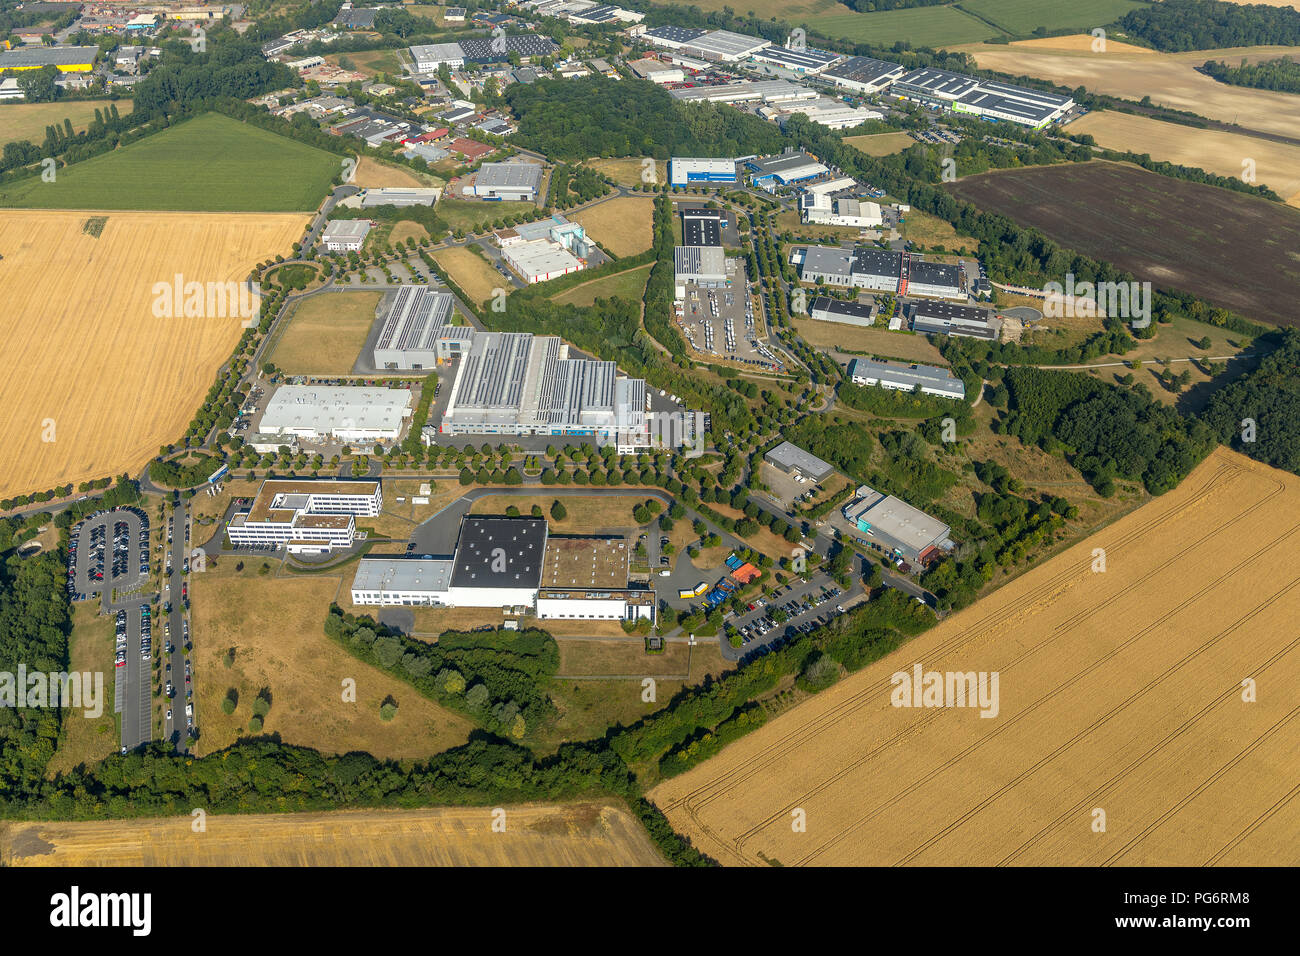 Natural and industrial park Olfetal, LR Health & Beauty Systems GmbH, Ahlen, Ruhr aeria, Nordrhein-Westfalen, Germany, DEU, Europe, aerial view, birds - Stock Image